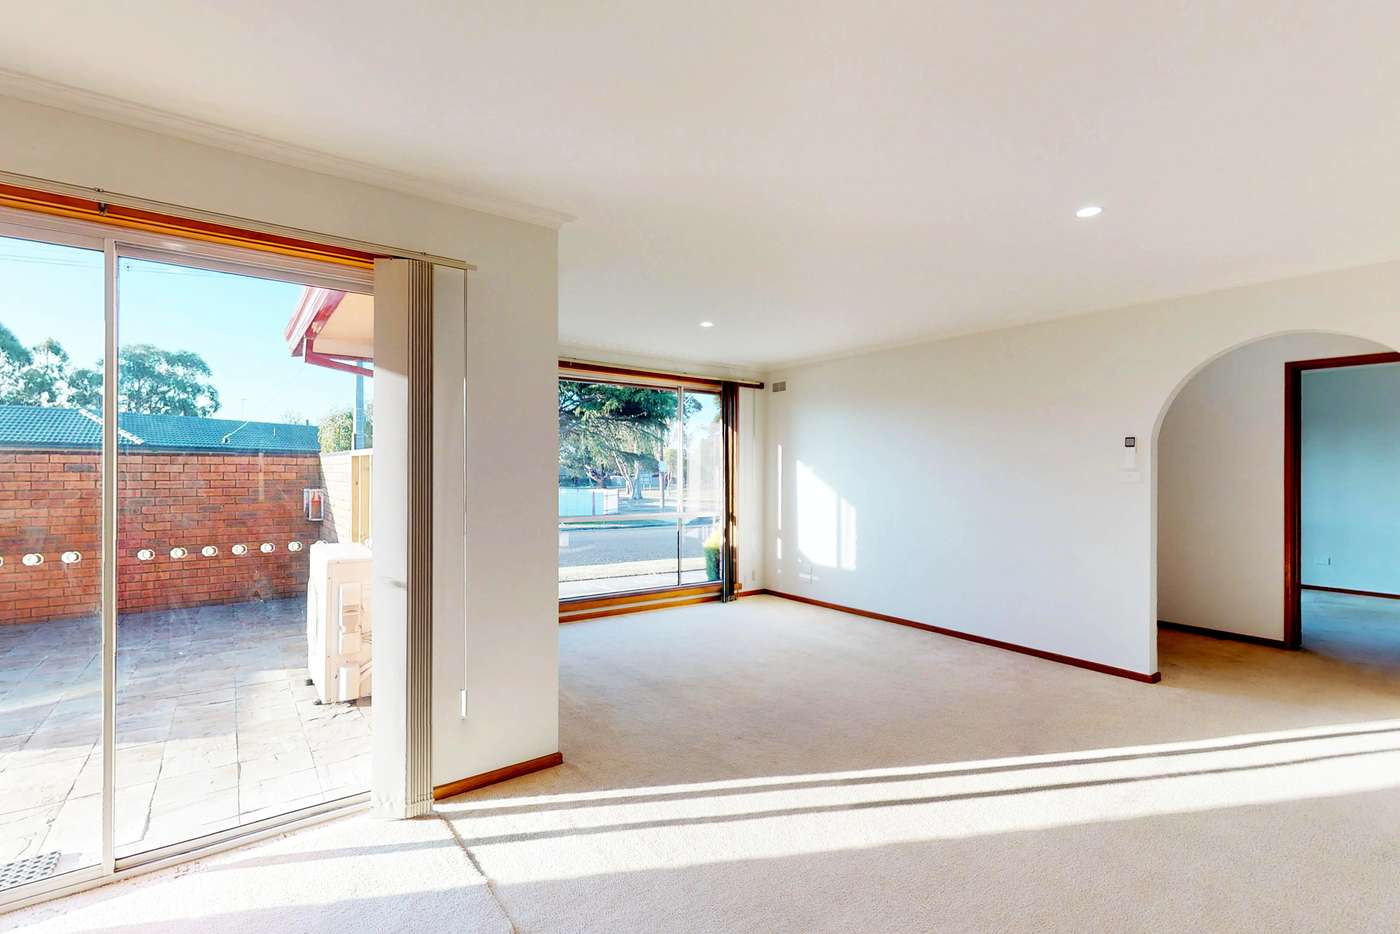 Seventh view of Homely house listing, 67 Grubb Avenue, Traralgon VIC 3844